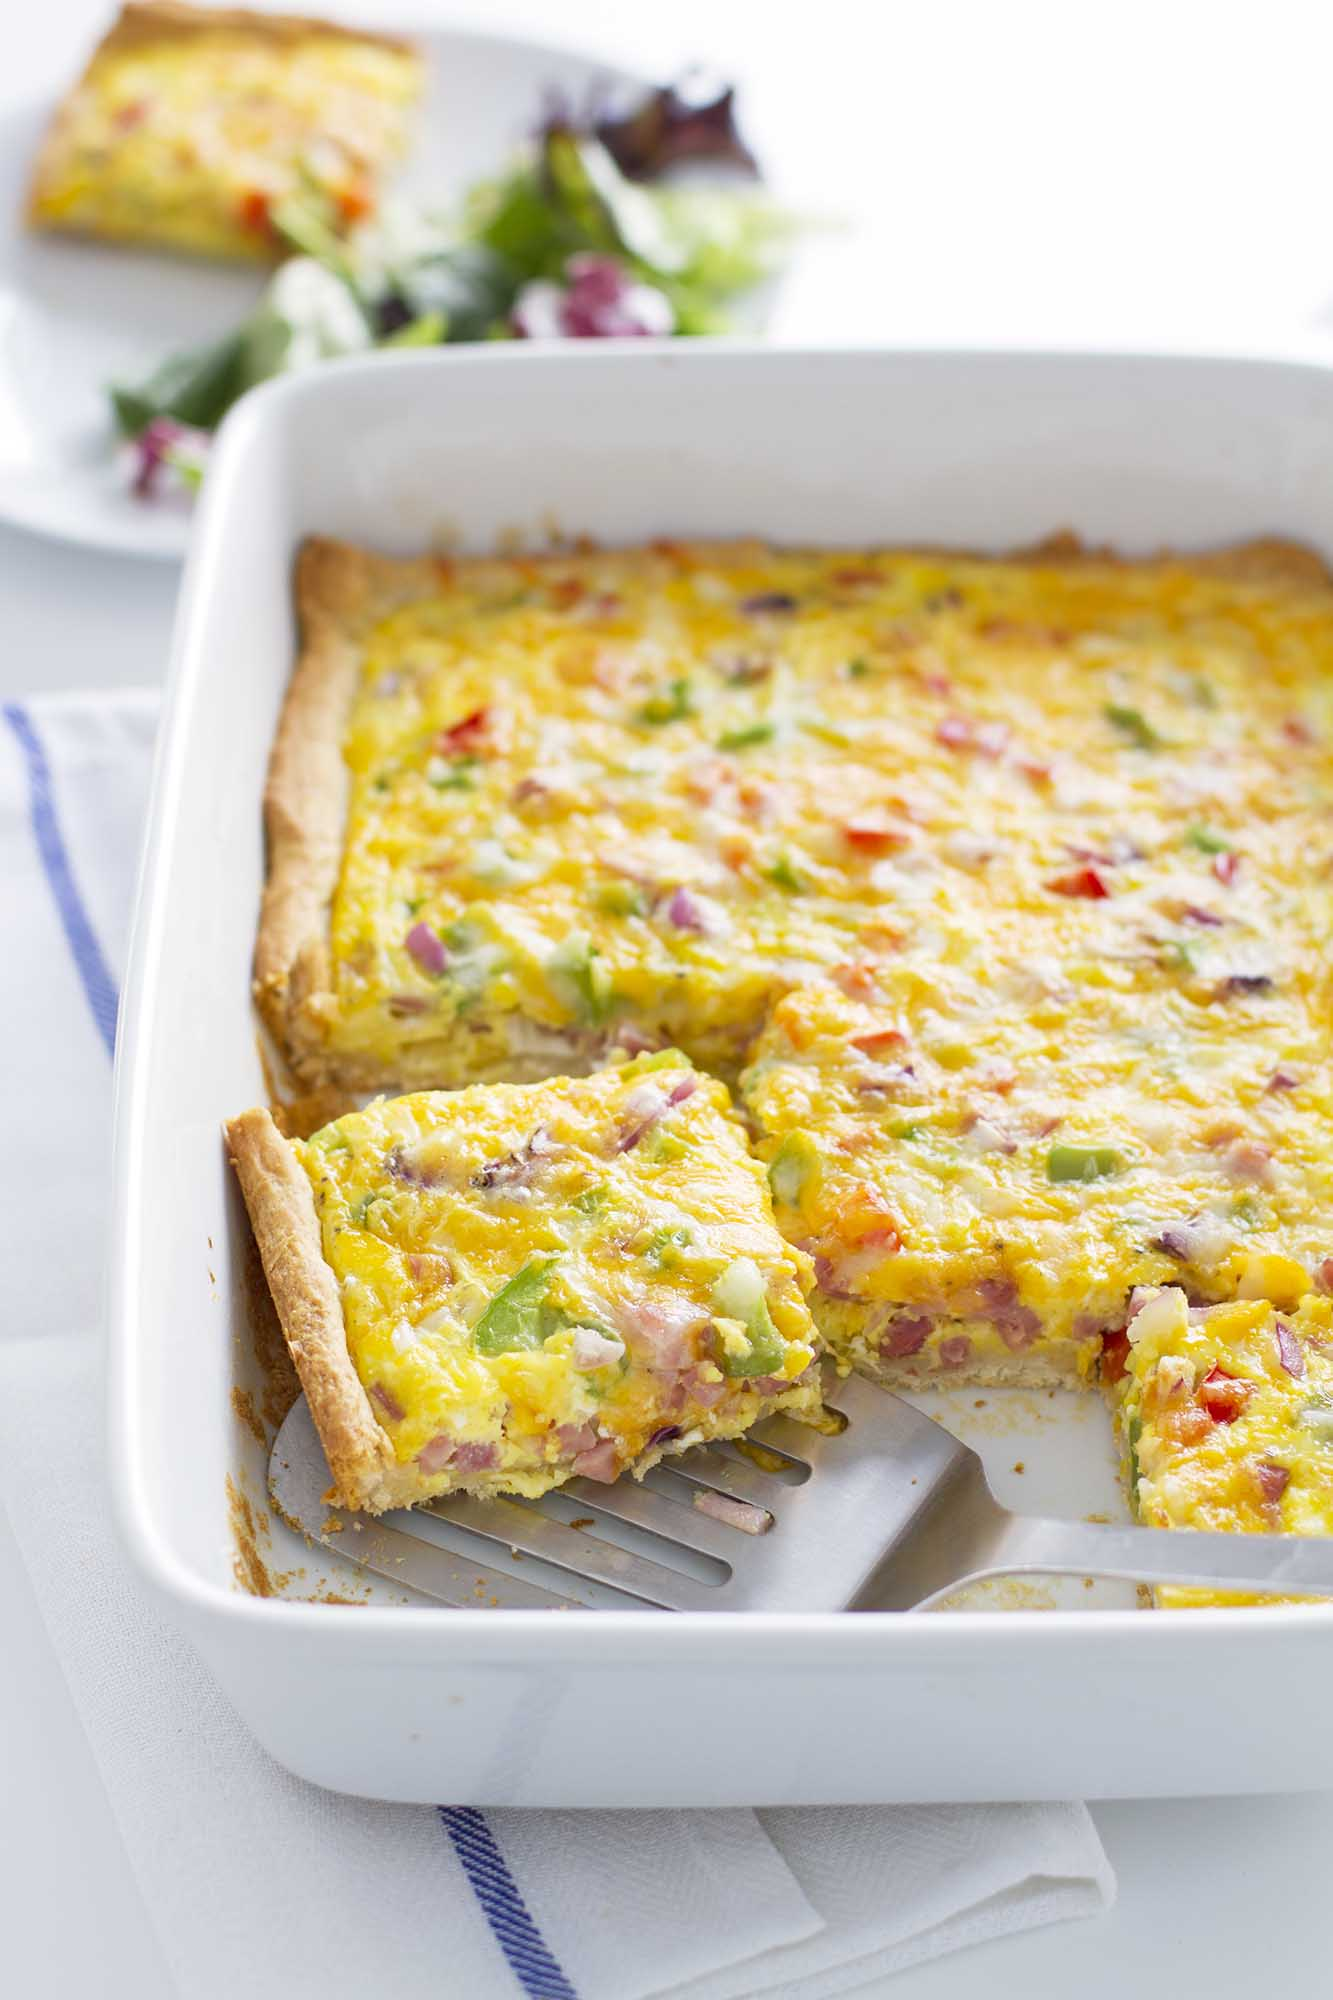 Denver omelette crescent bake in baking dish